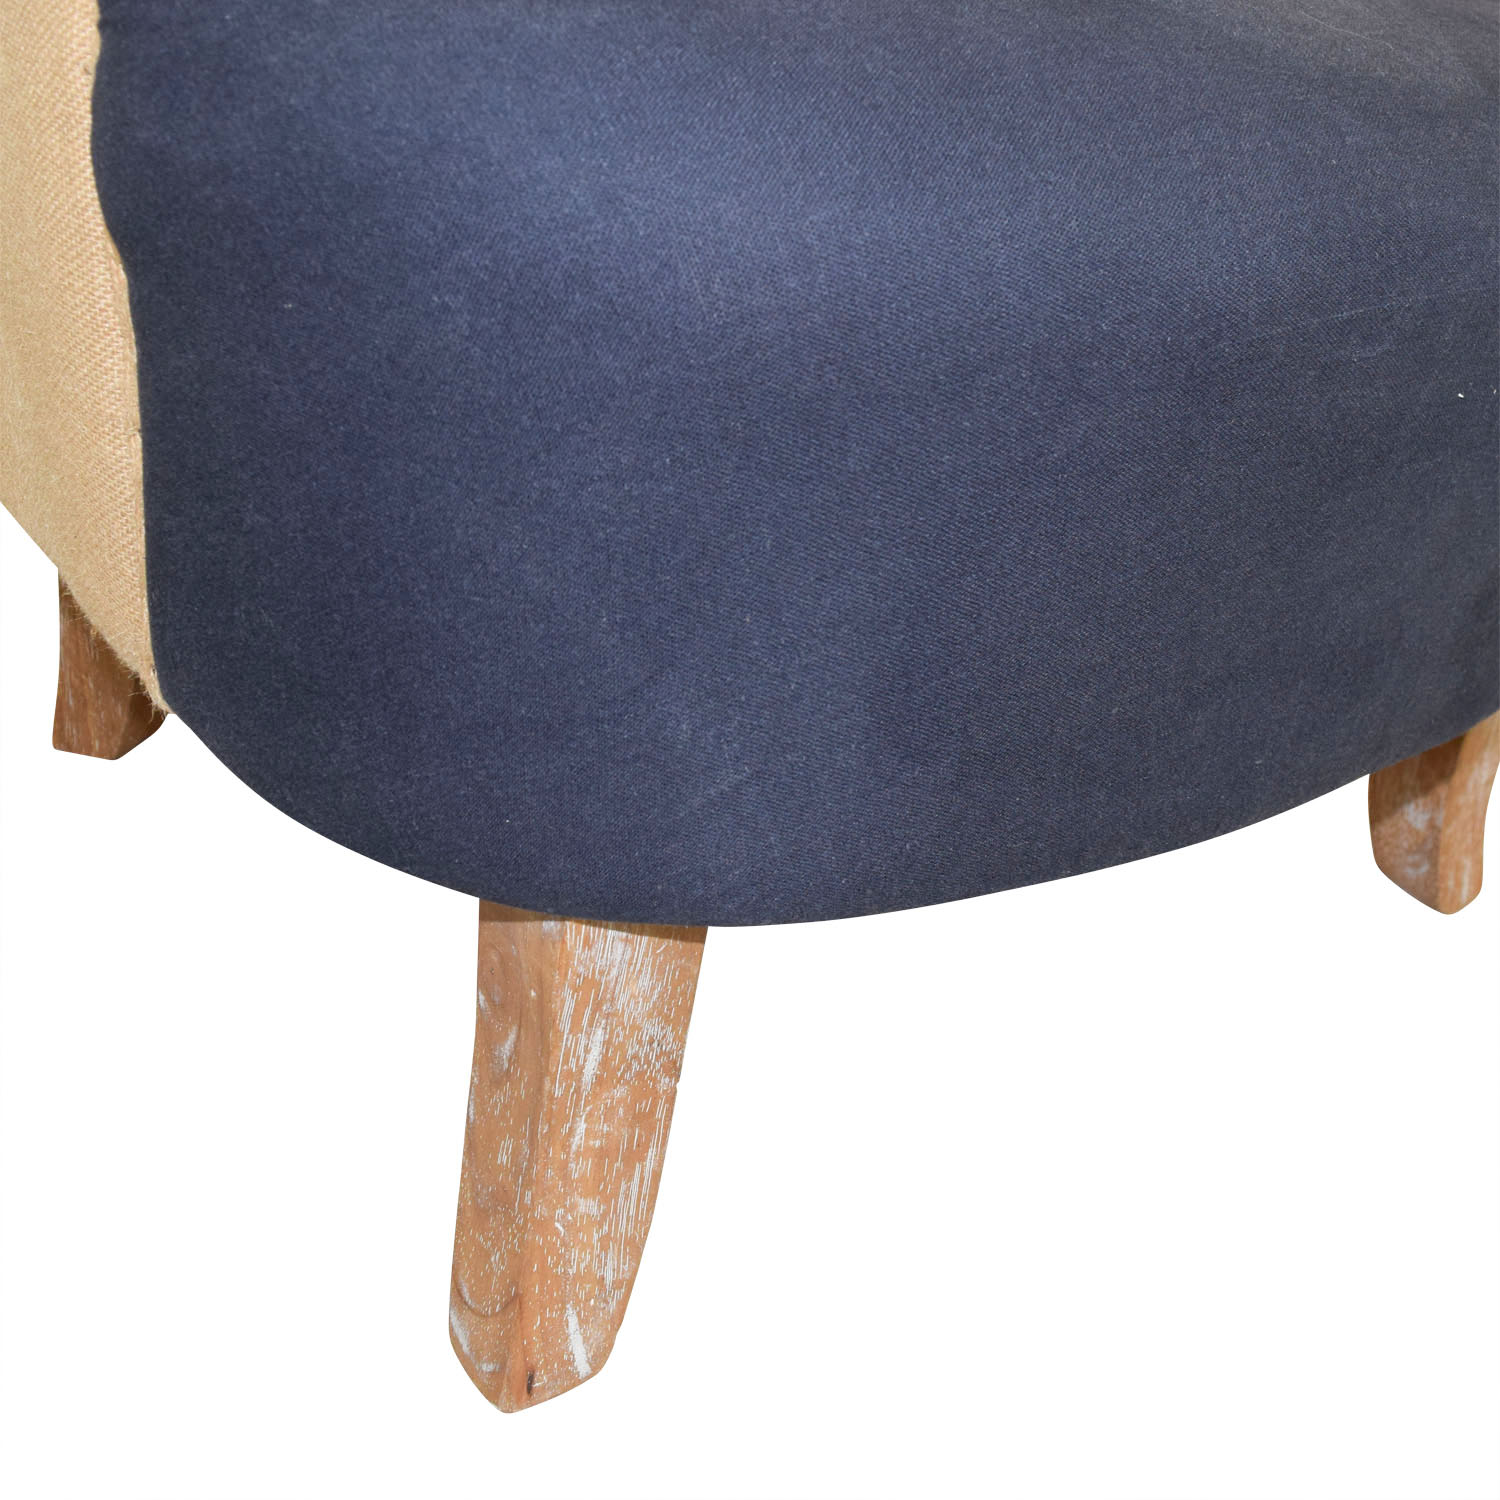 Pier 1 Imports Pier 1 Imports Blue and Tan Tufted Armchair price